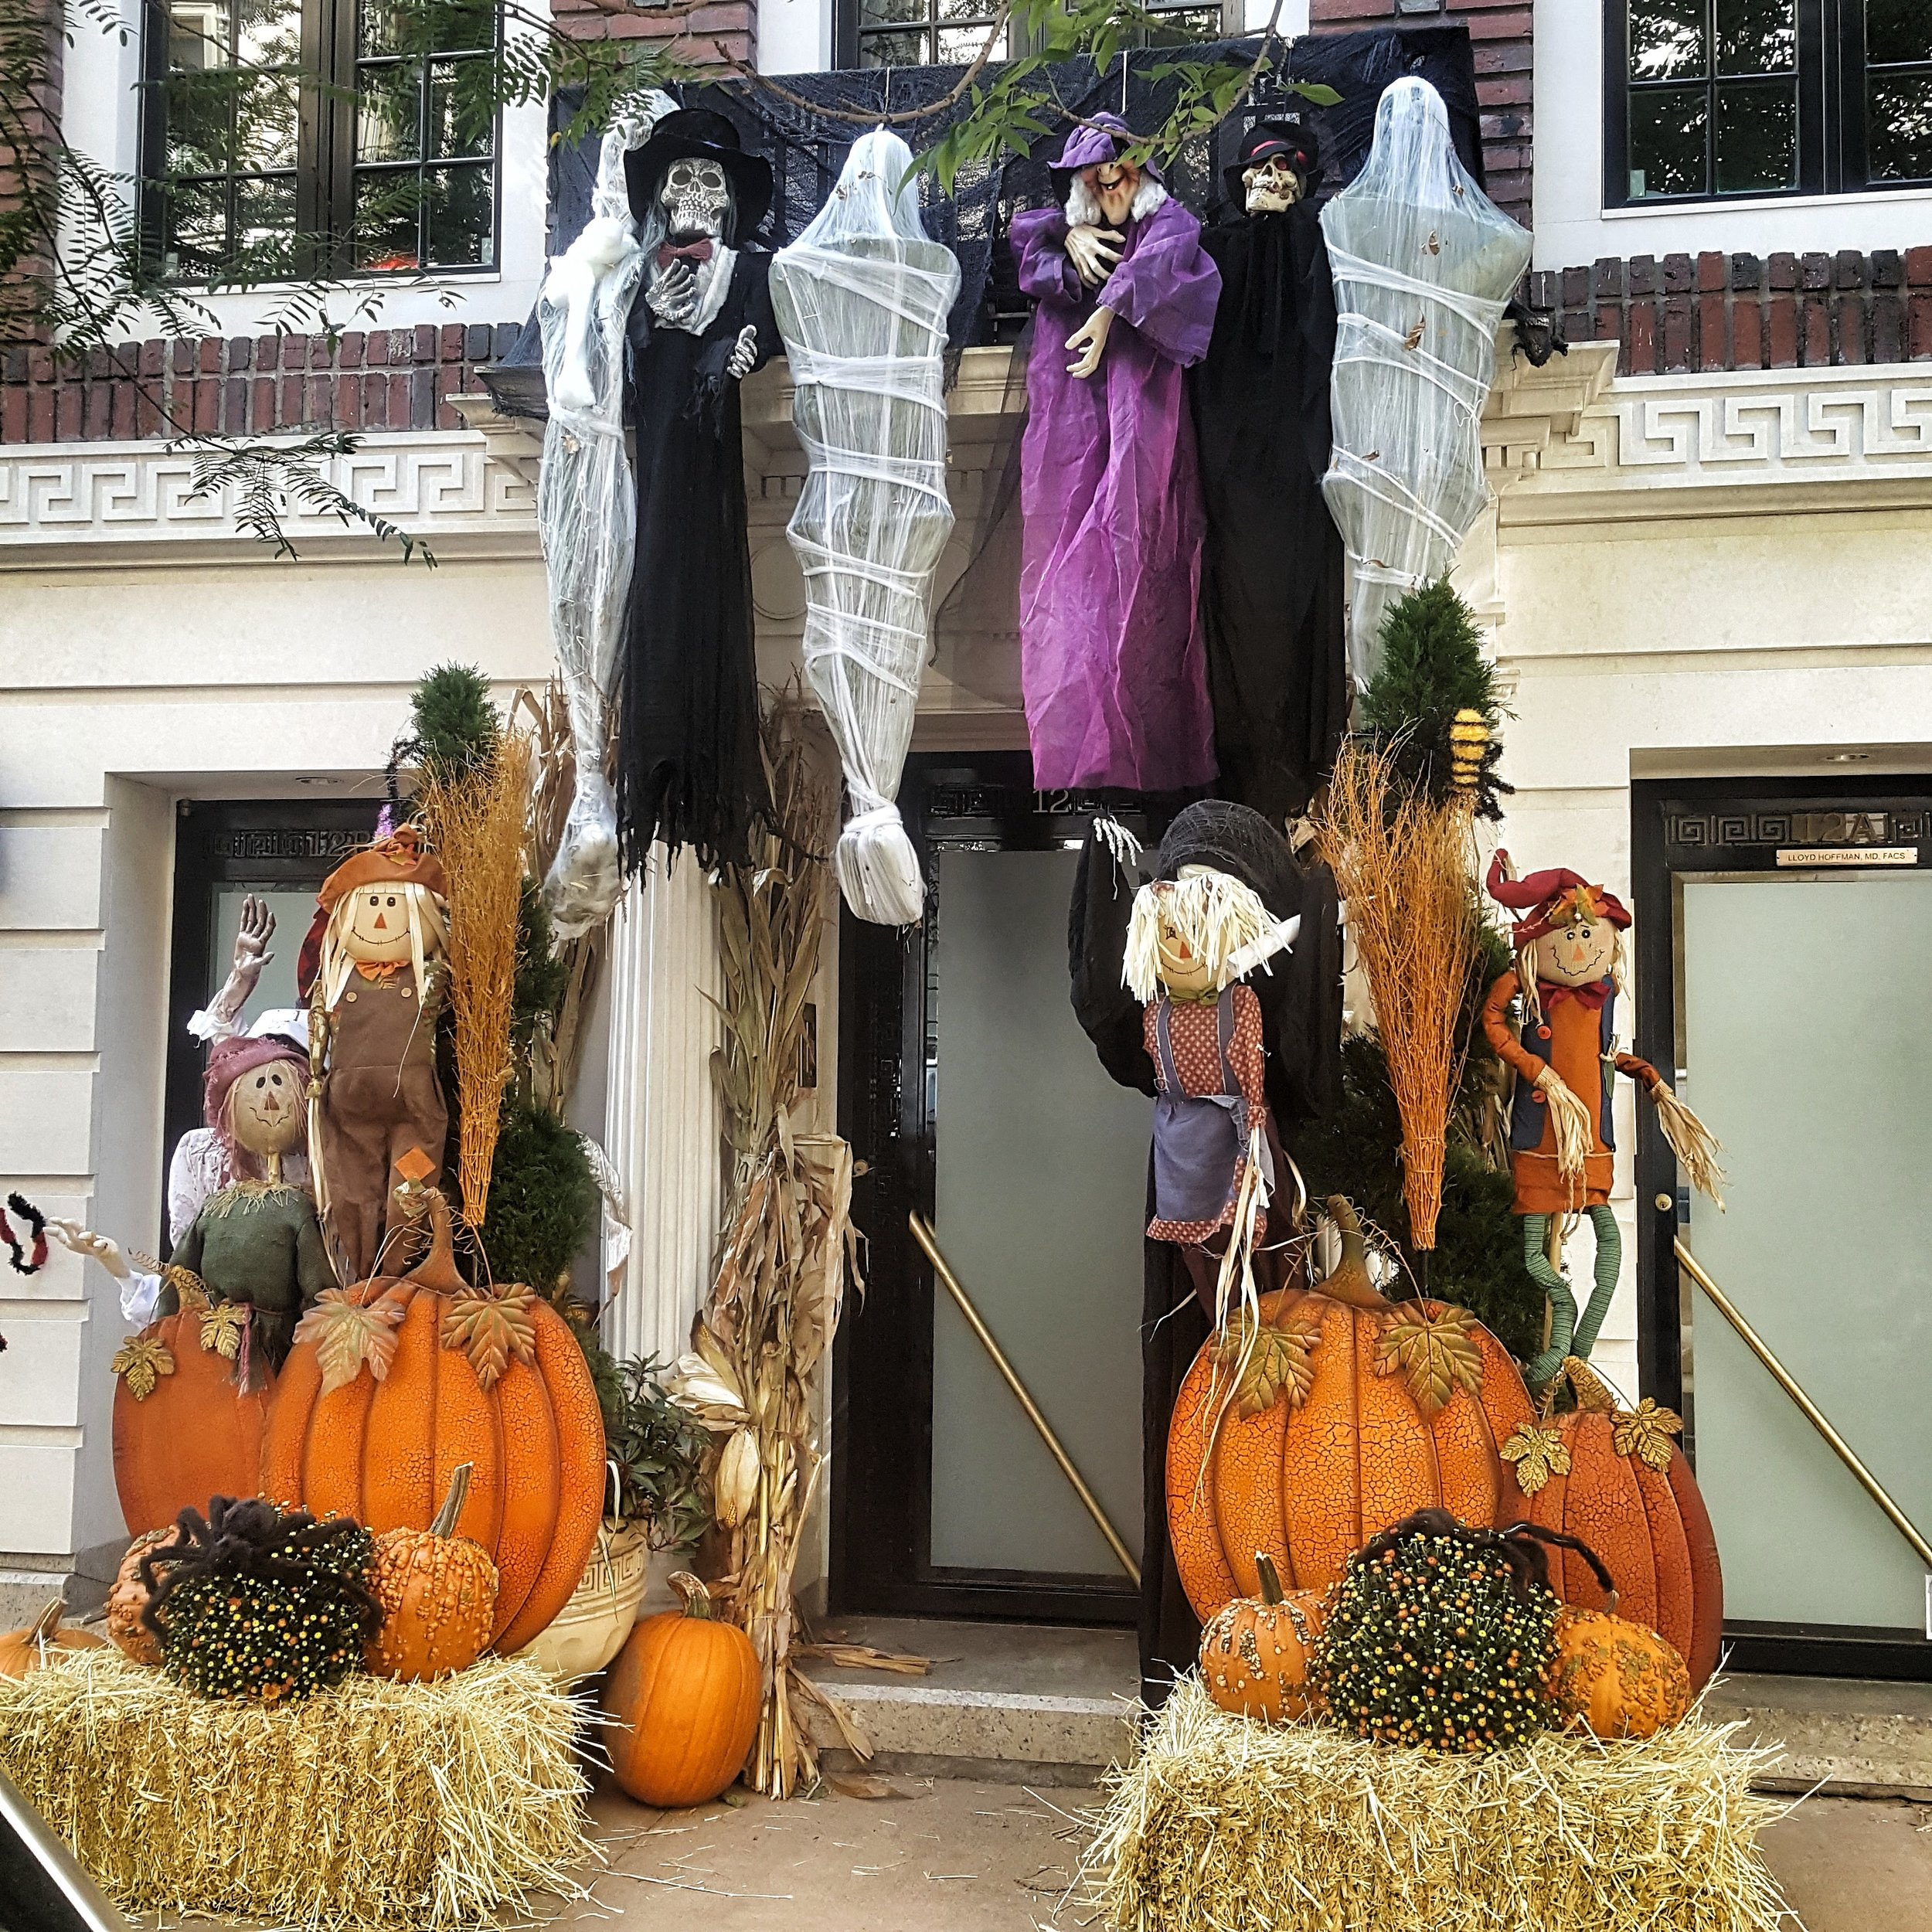 Halloween in the city